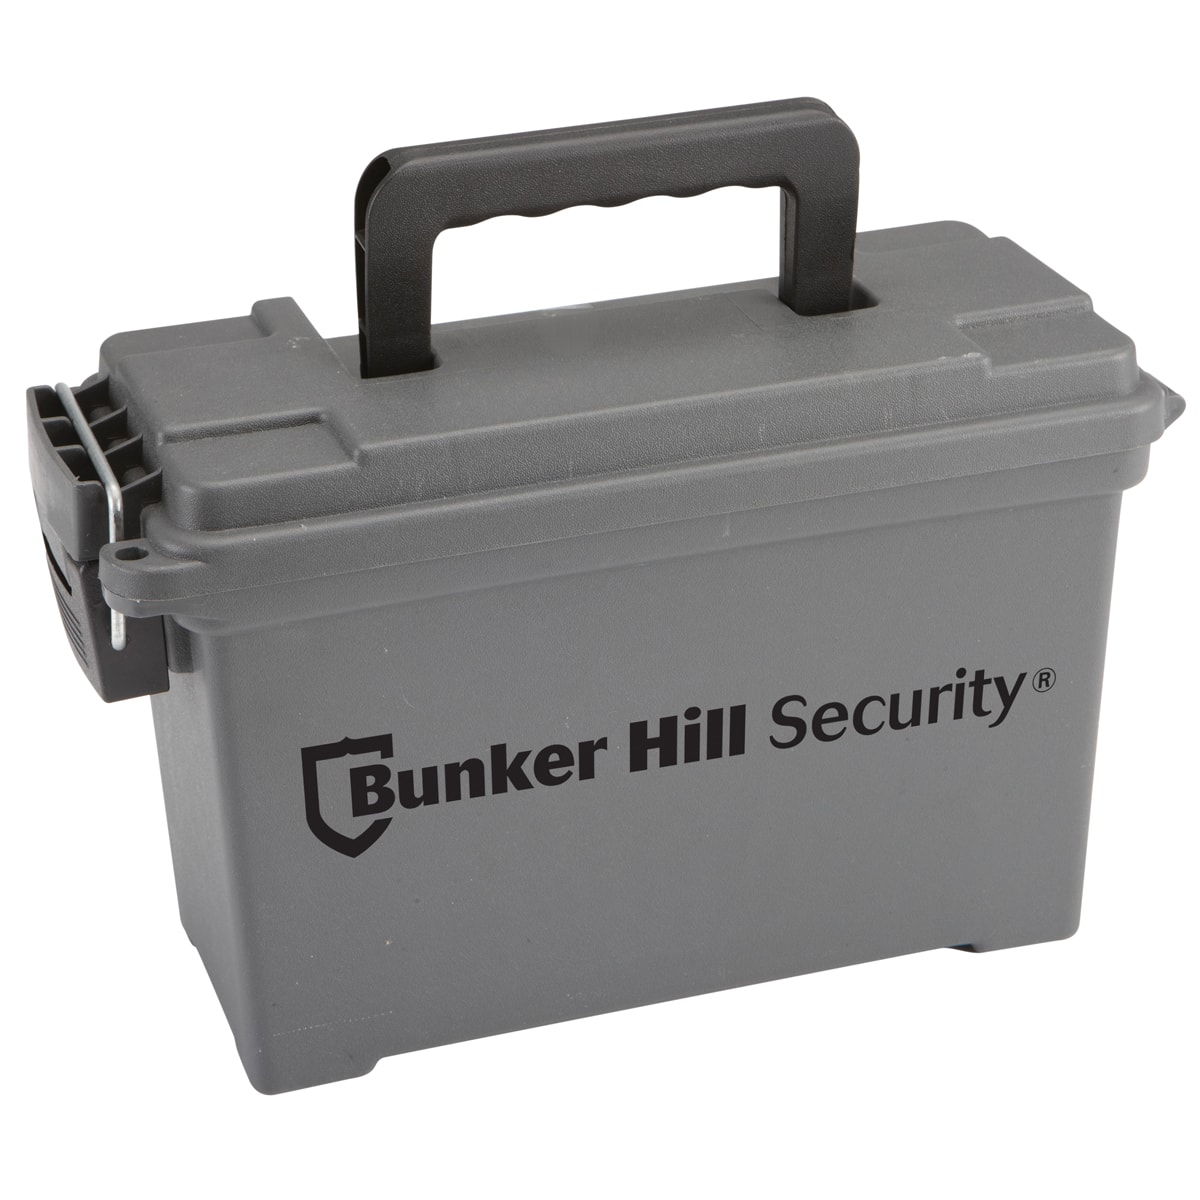 Harbor Freight: Bunker Hill Security AMMO Box - $3.99 after coupon (Limit 8 per purchase/order). Store pickup or flat rate $6.99 shipping